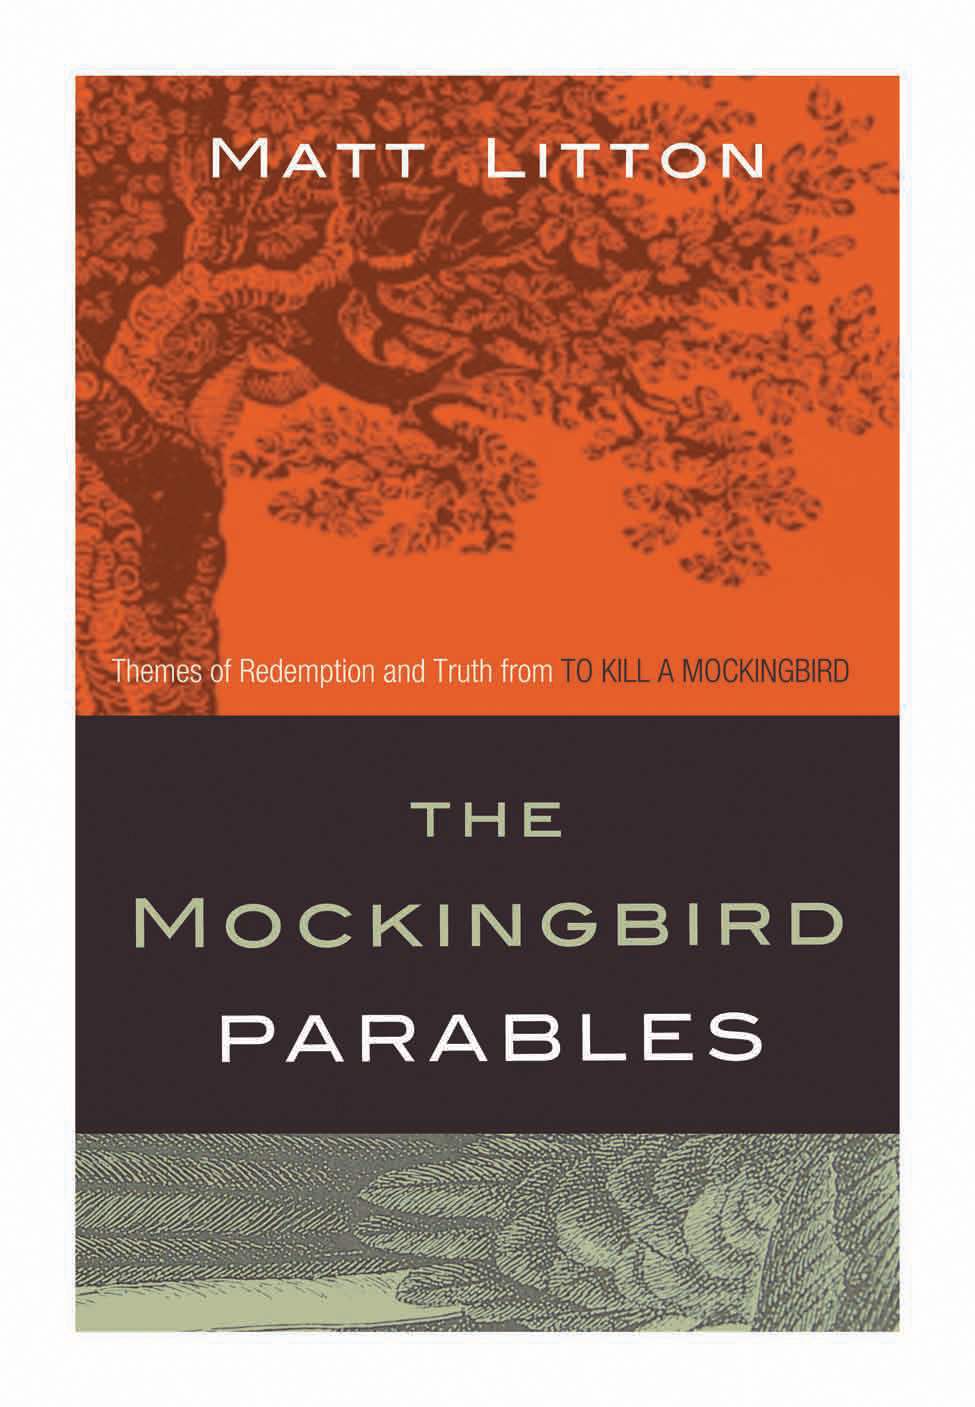 the mockingbird parables litton matt